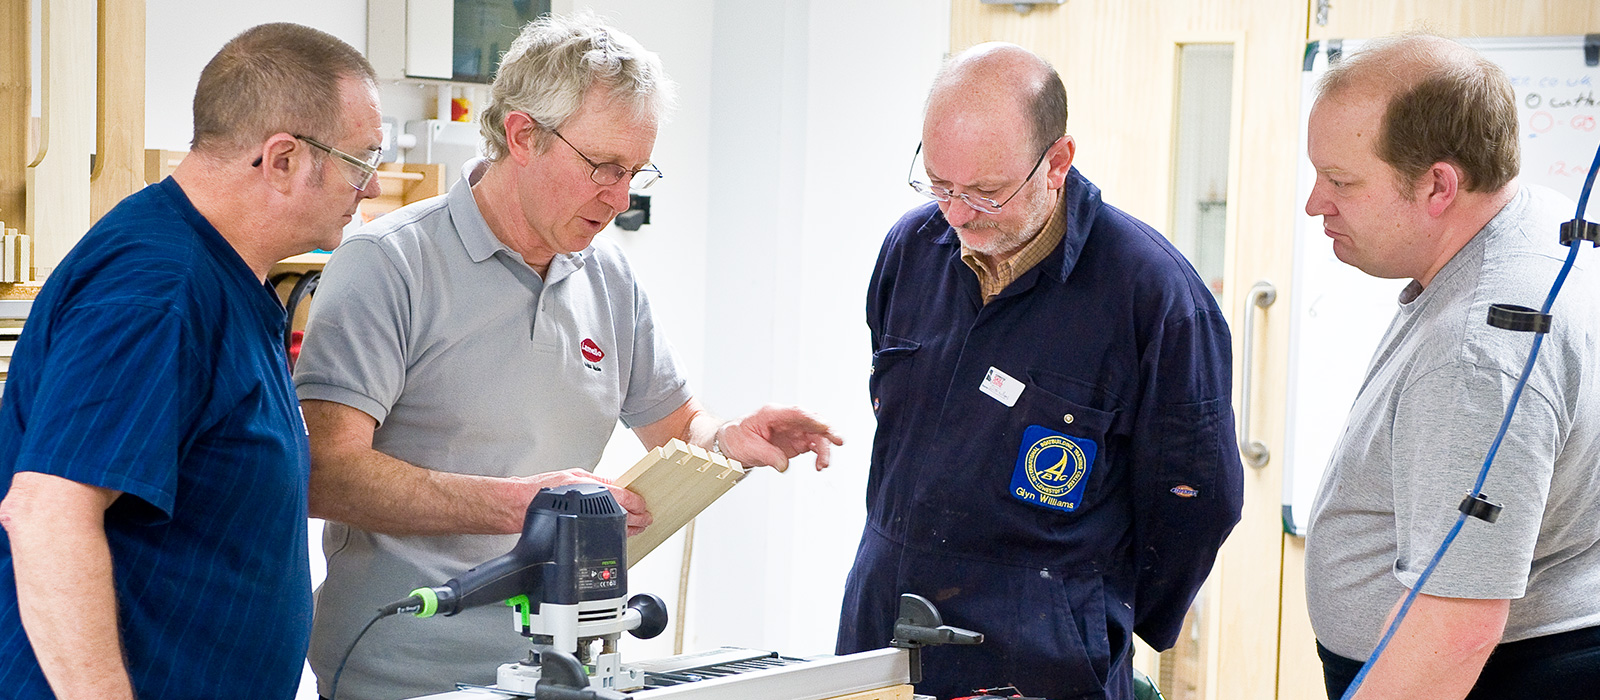 Learn more about Leigh and routing at our Skill Centre